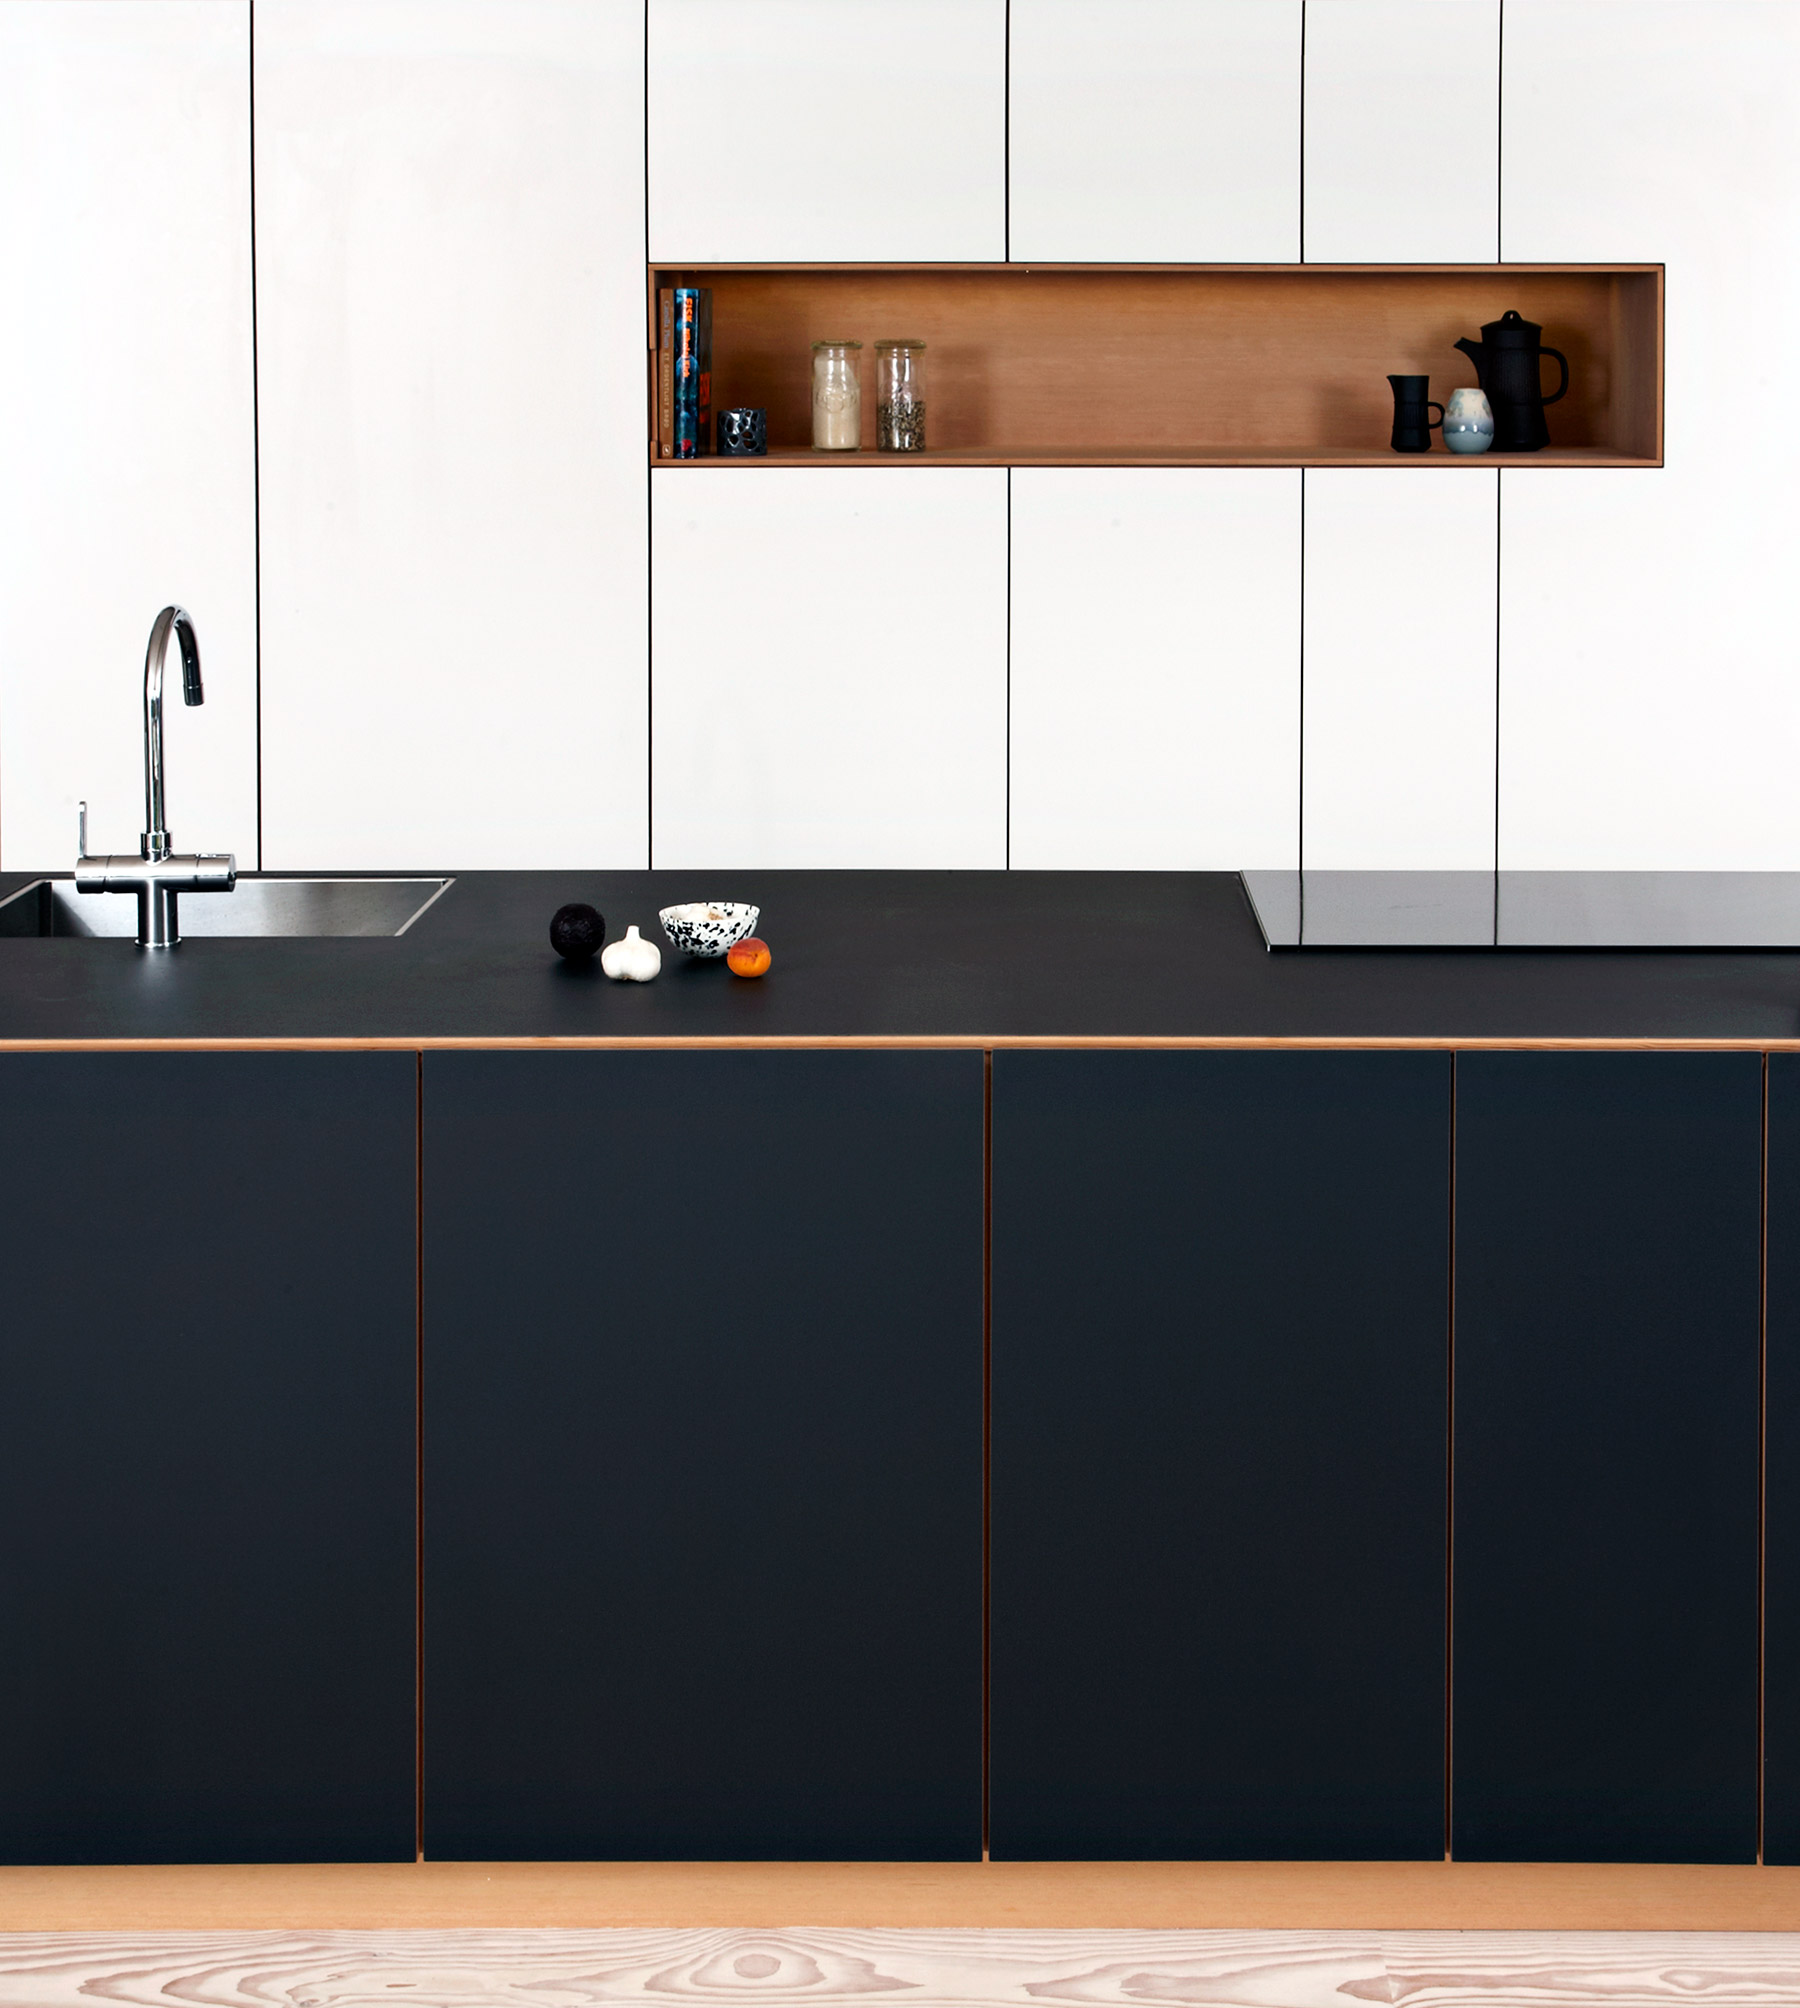 Minimalistic kitchen by Nicolaj Bo™